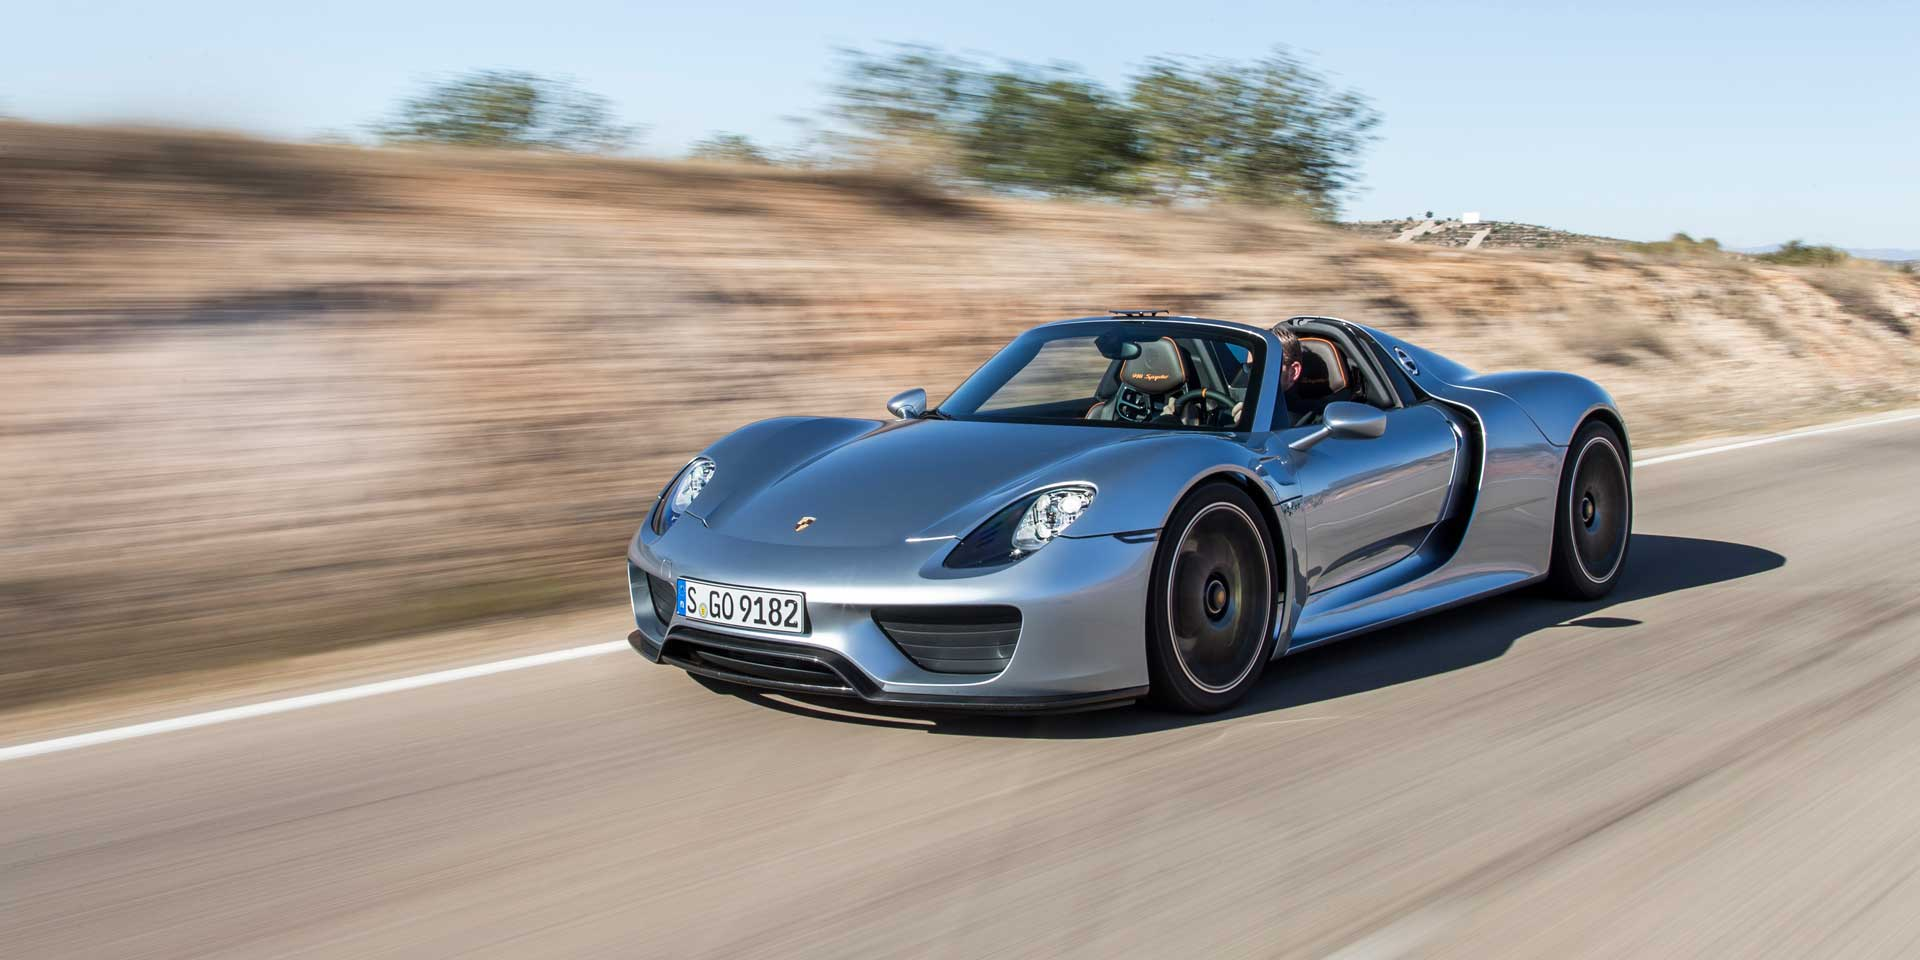 2015 - Porsche - 918 Spyder - Vehicles on Display ...